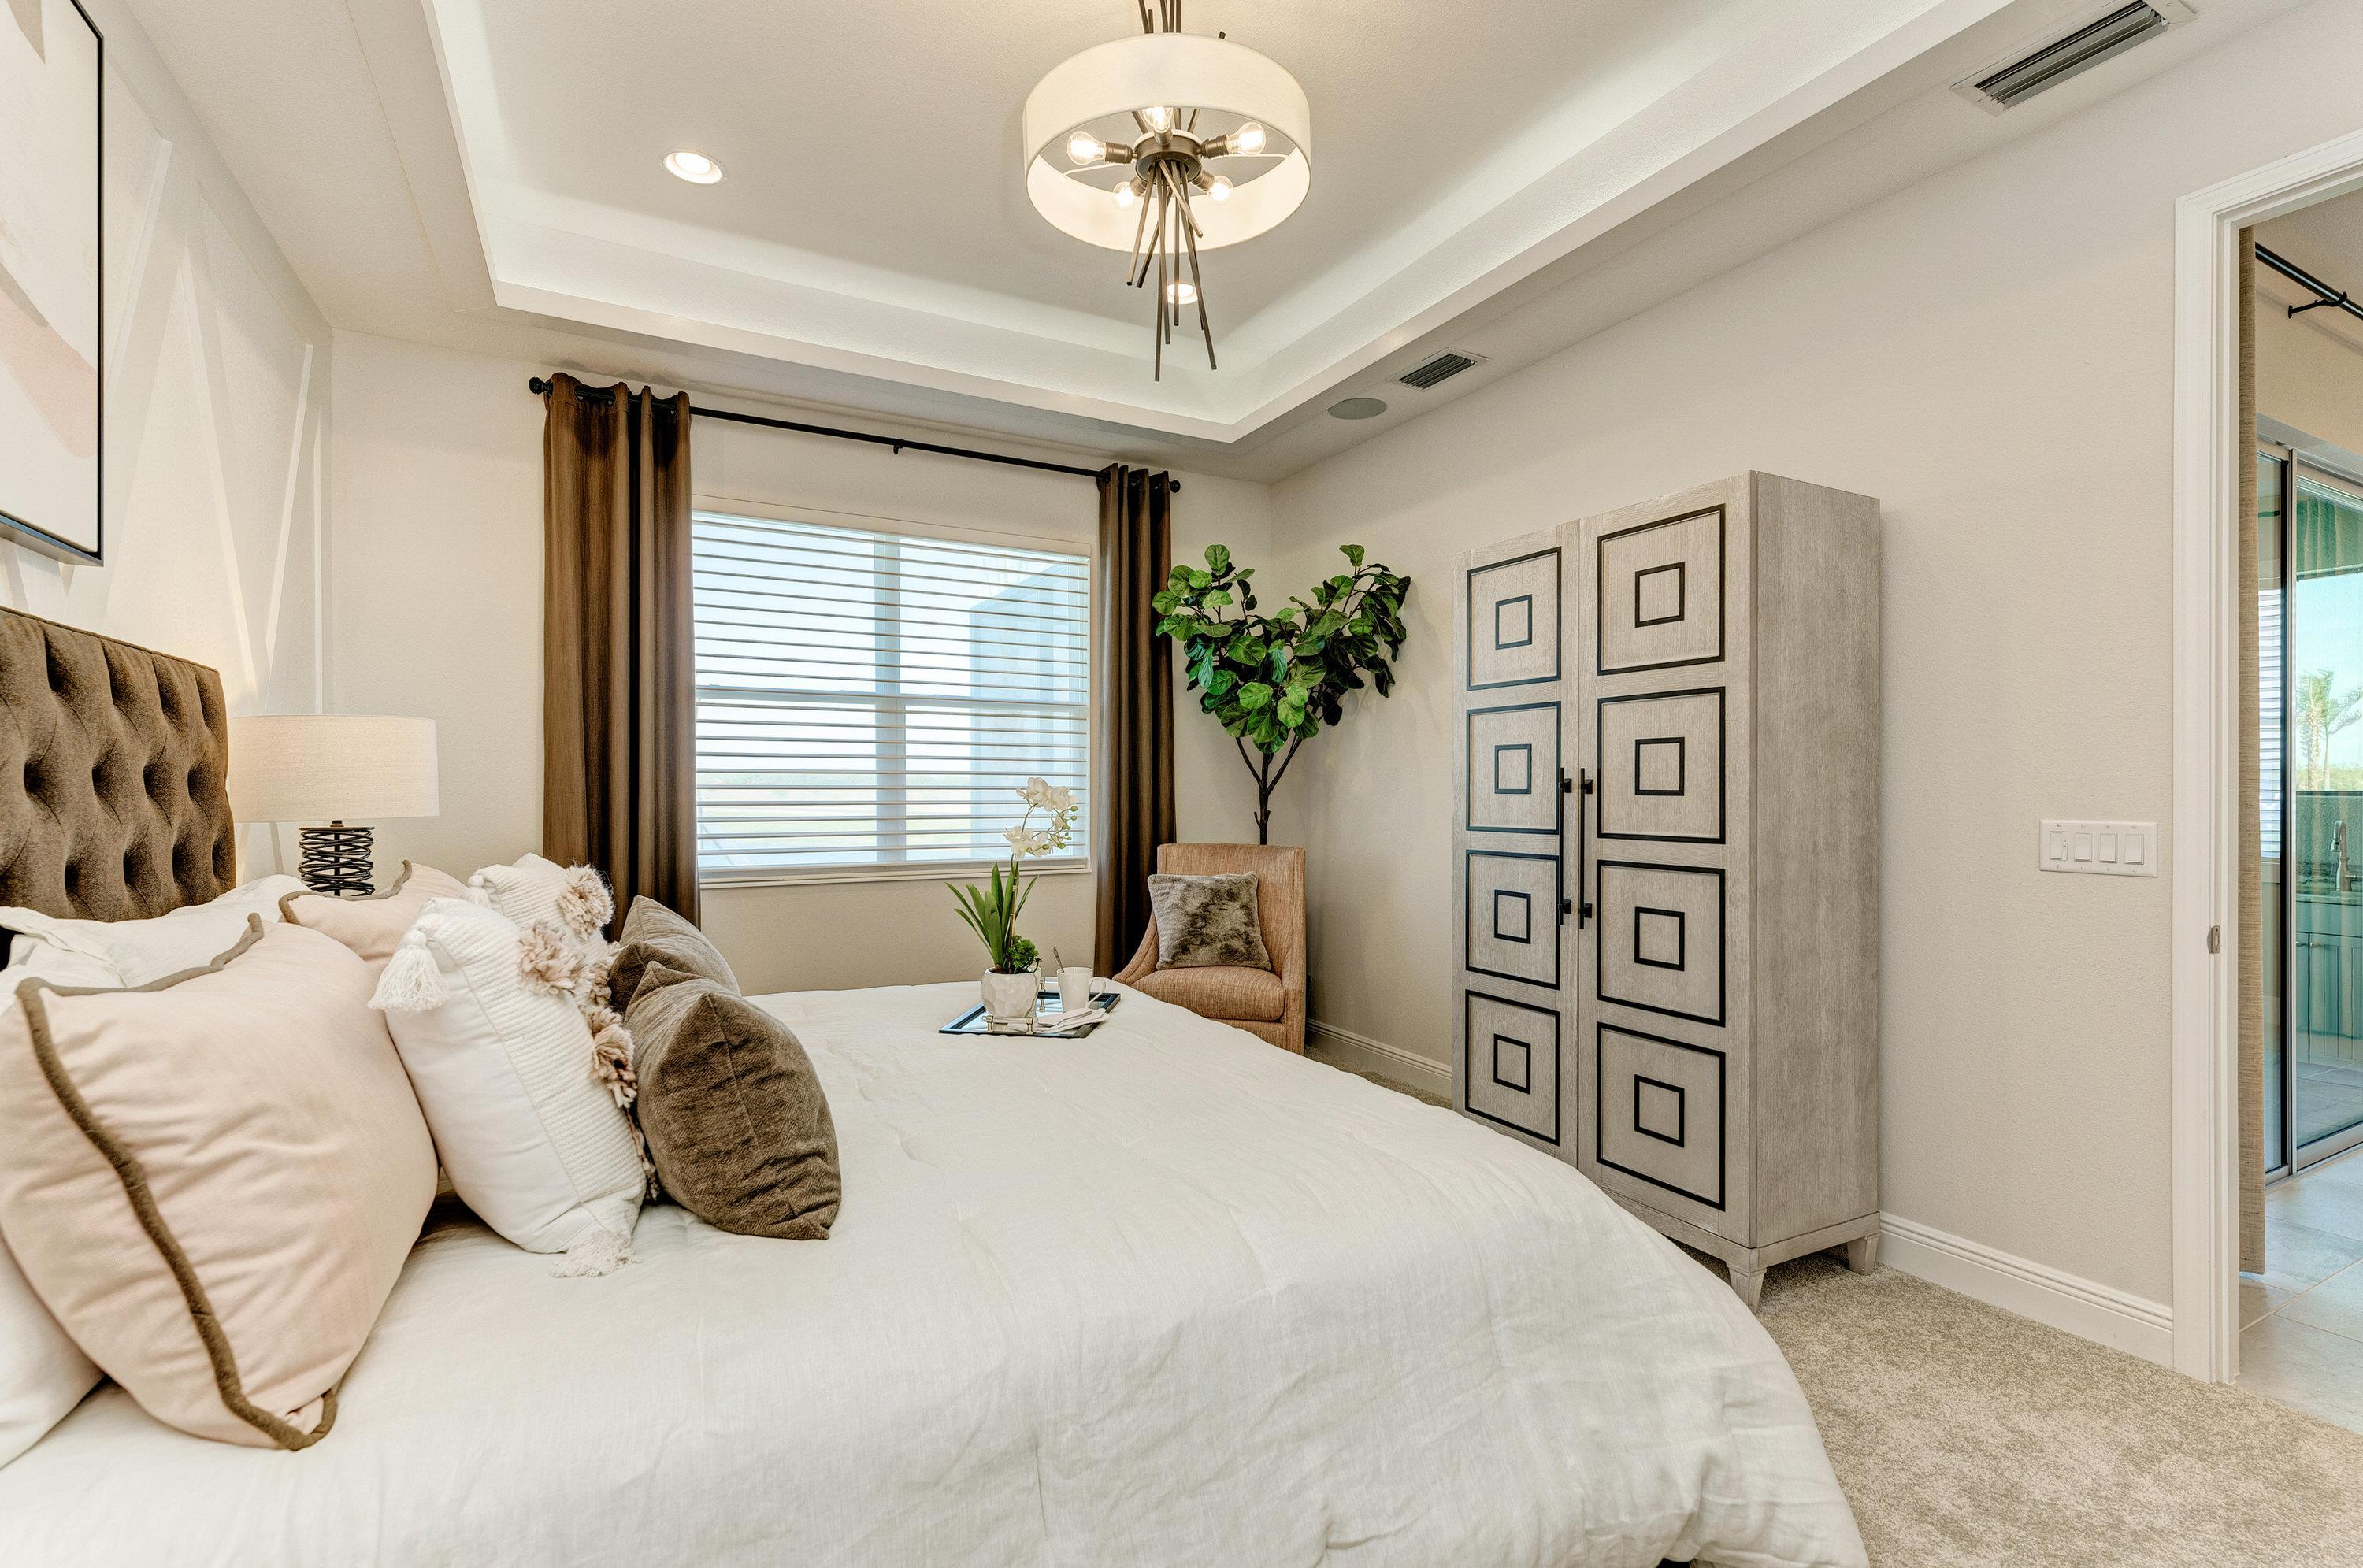 Bedroom featured in the Sanibel Villa Home By Medallion Home in Sarasota-Bradenton, FL